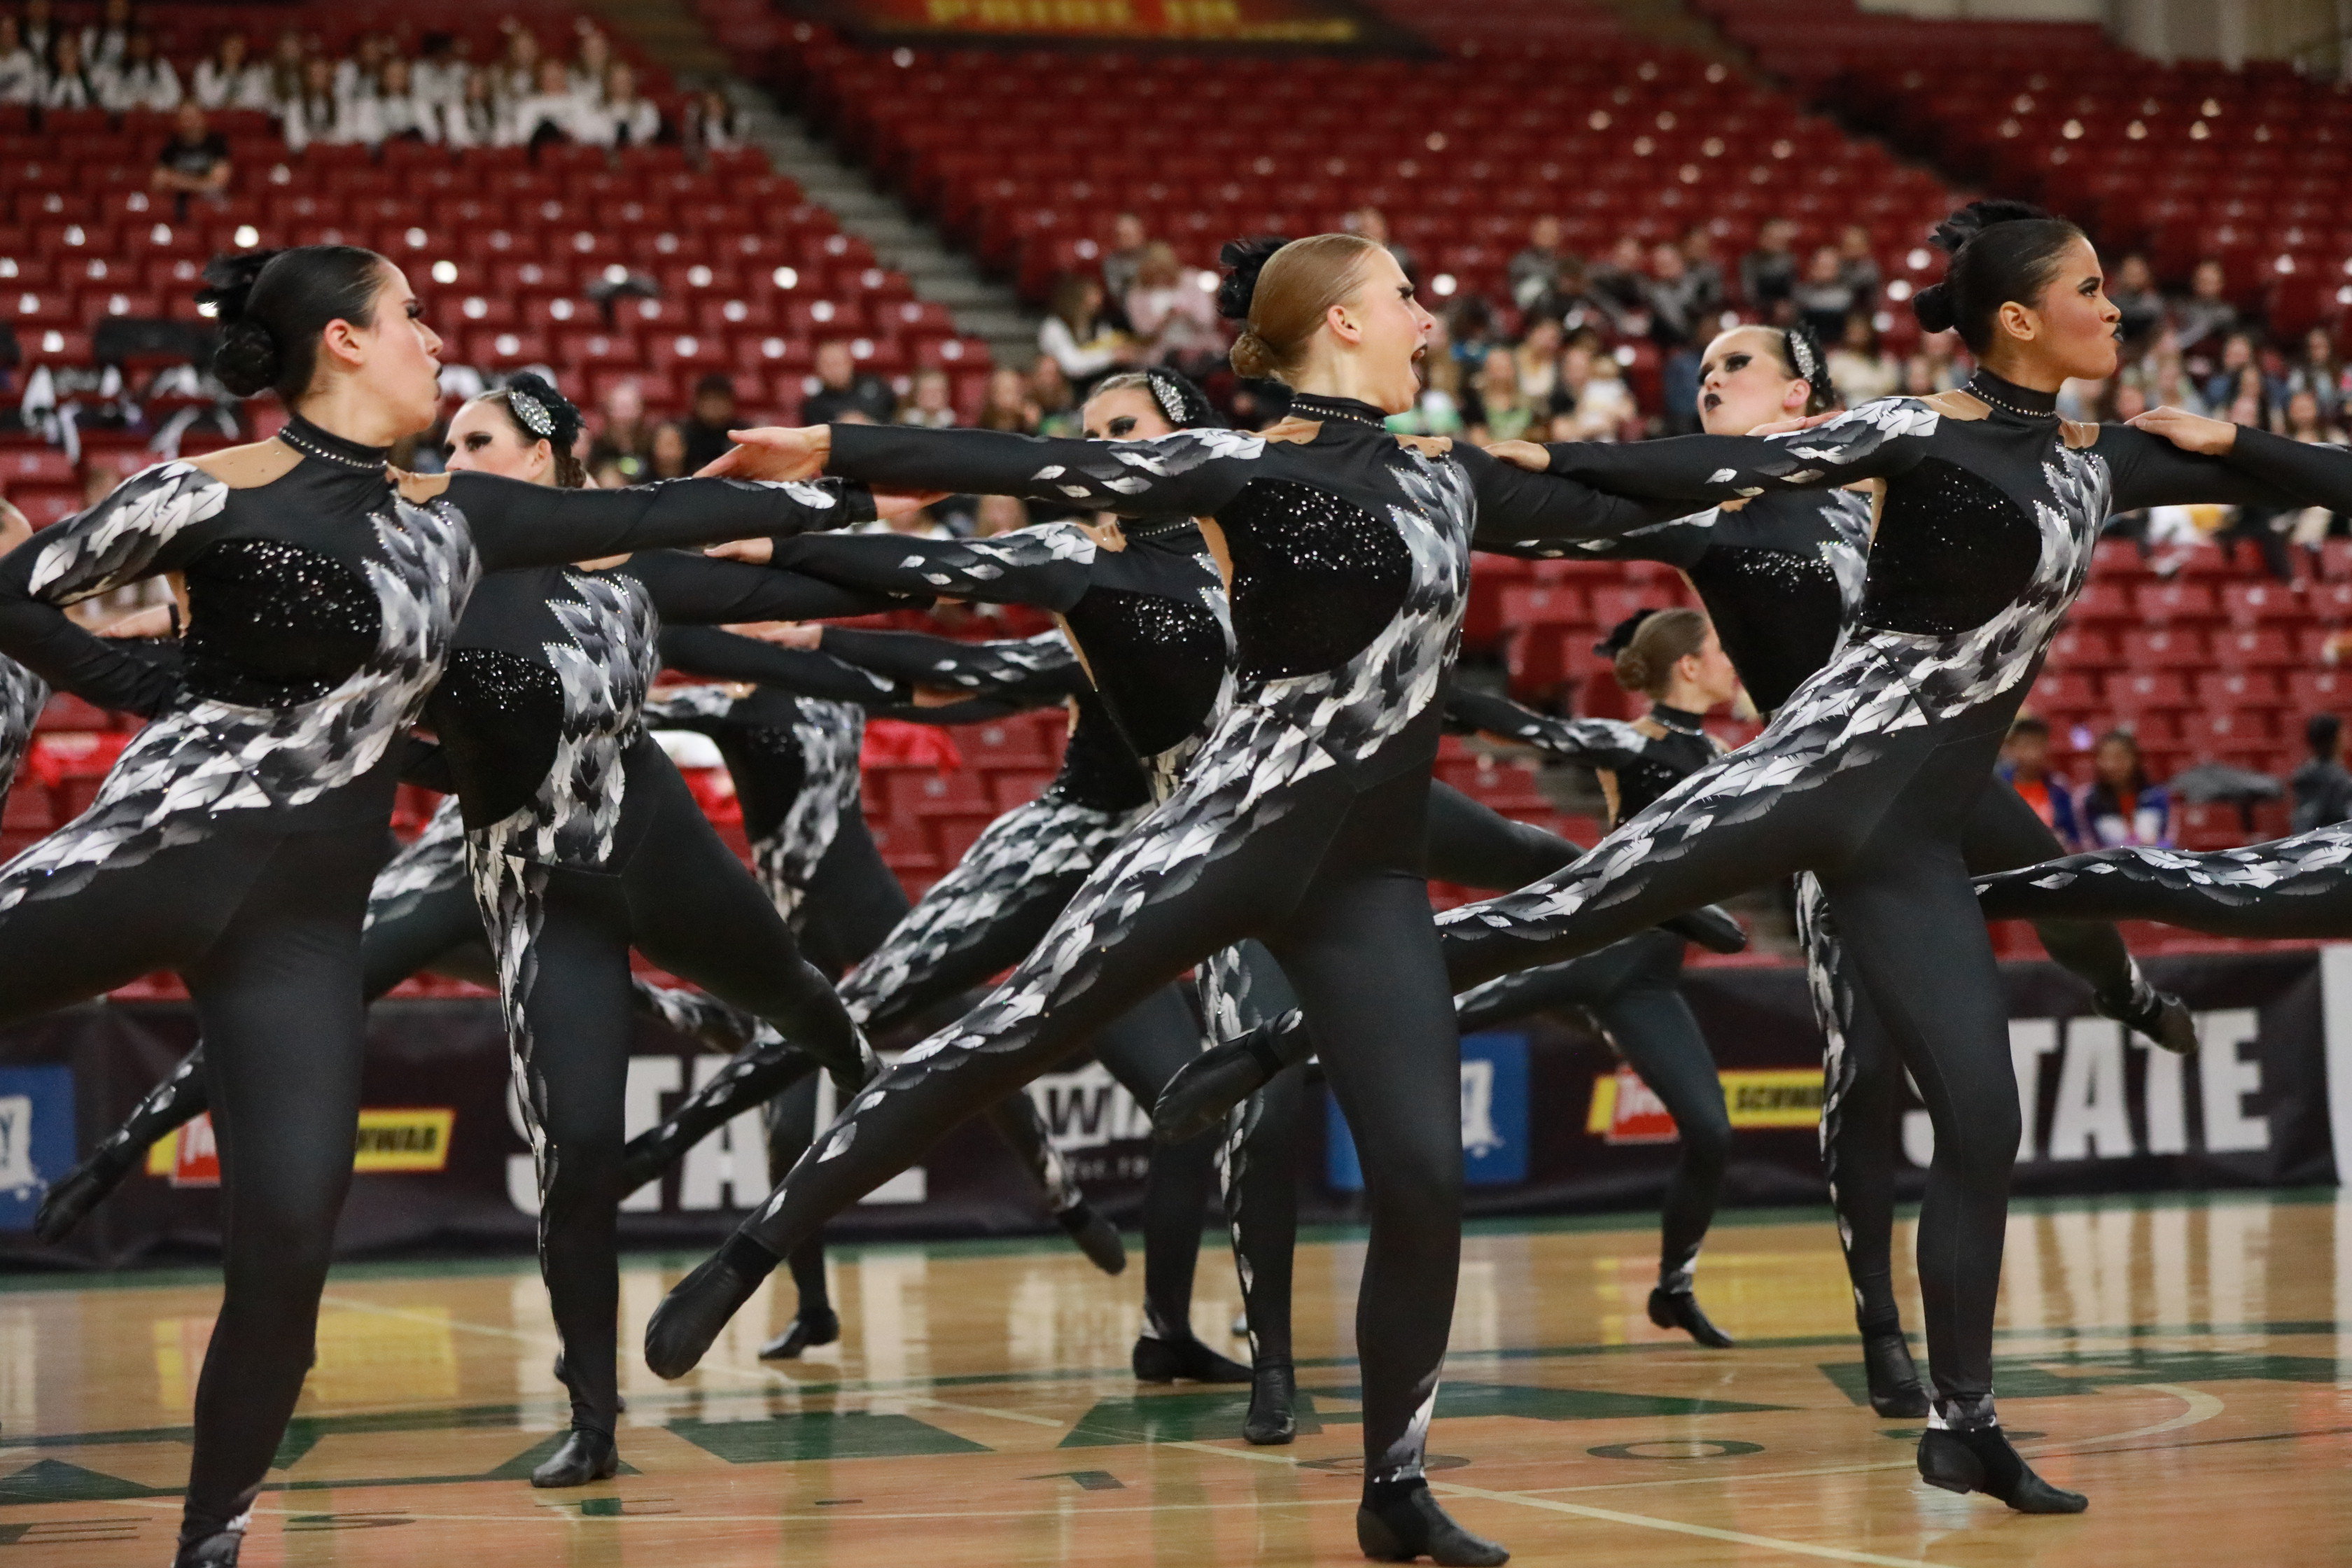 Liberty High School Washington State Dance Competition Kick costume